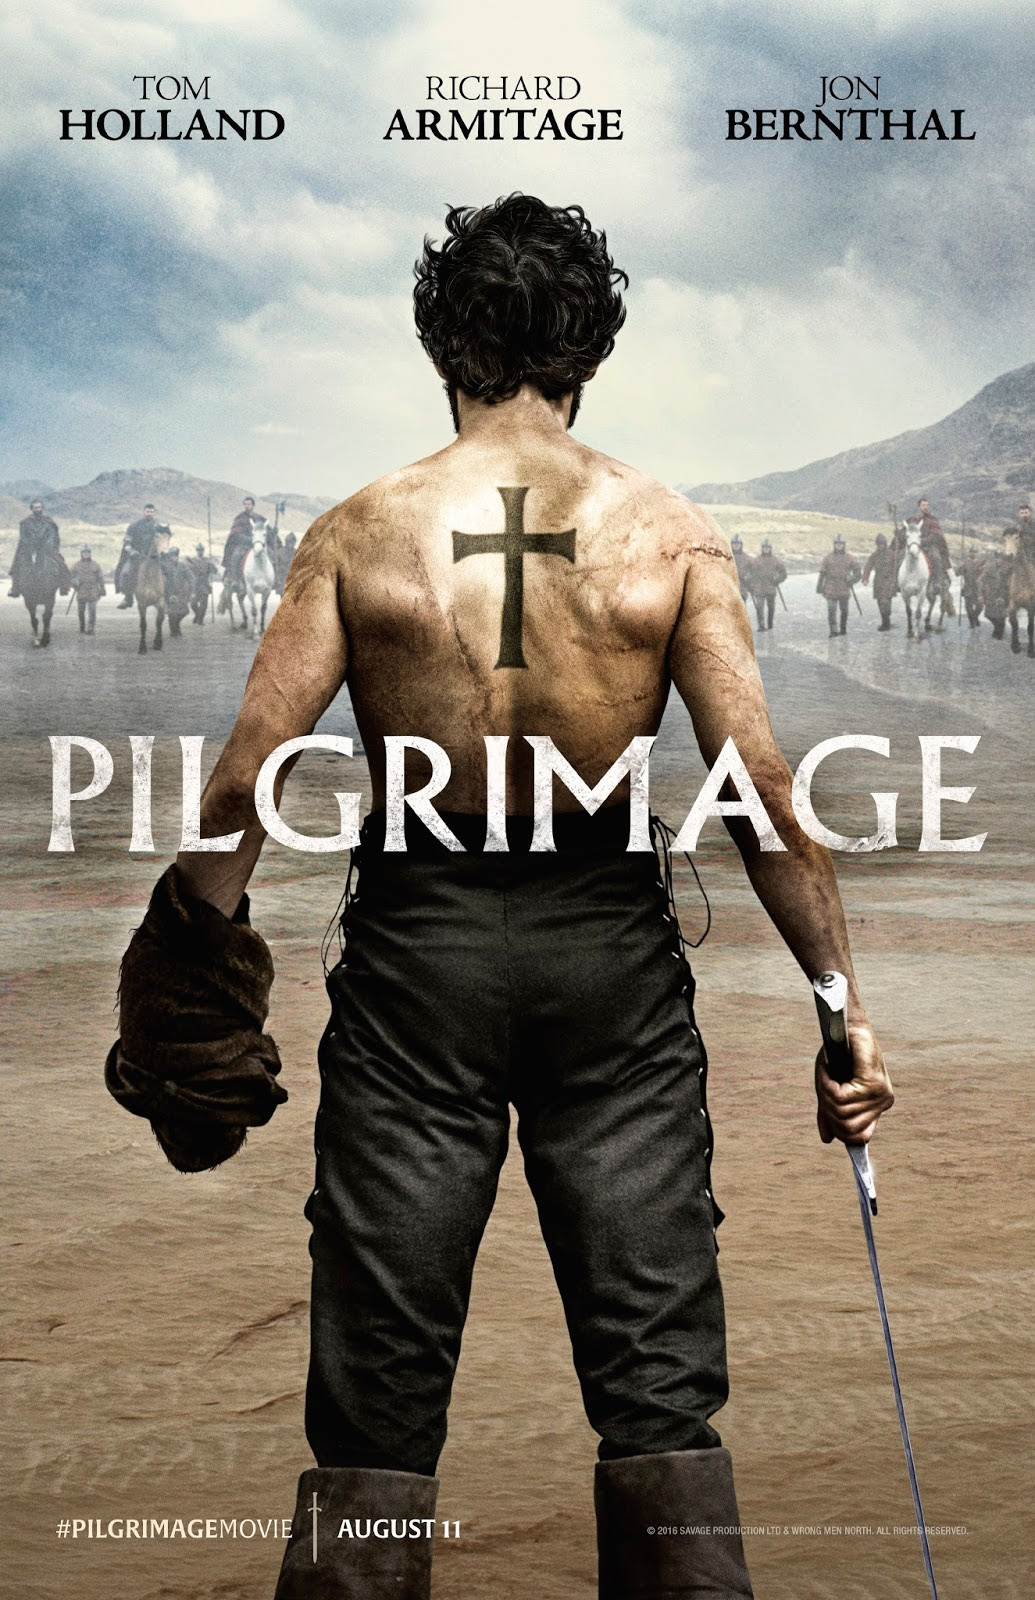 PILGRIMAGE: Jon Bernthal Reveals Battle Scars In The Official Poster